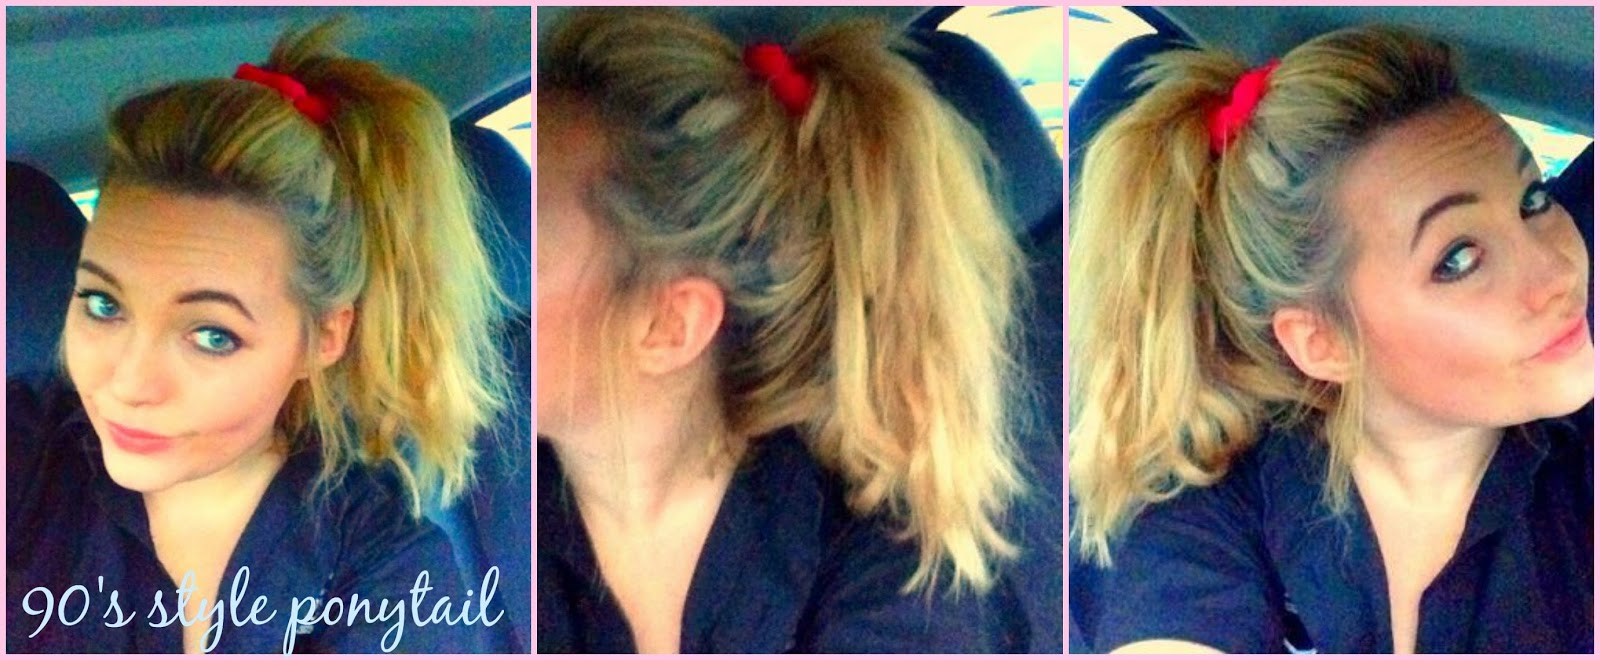 How Do You Put A Pony Tail Scrunchie On Short Hair | how